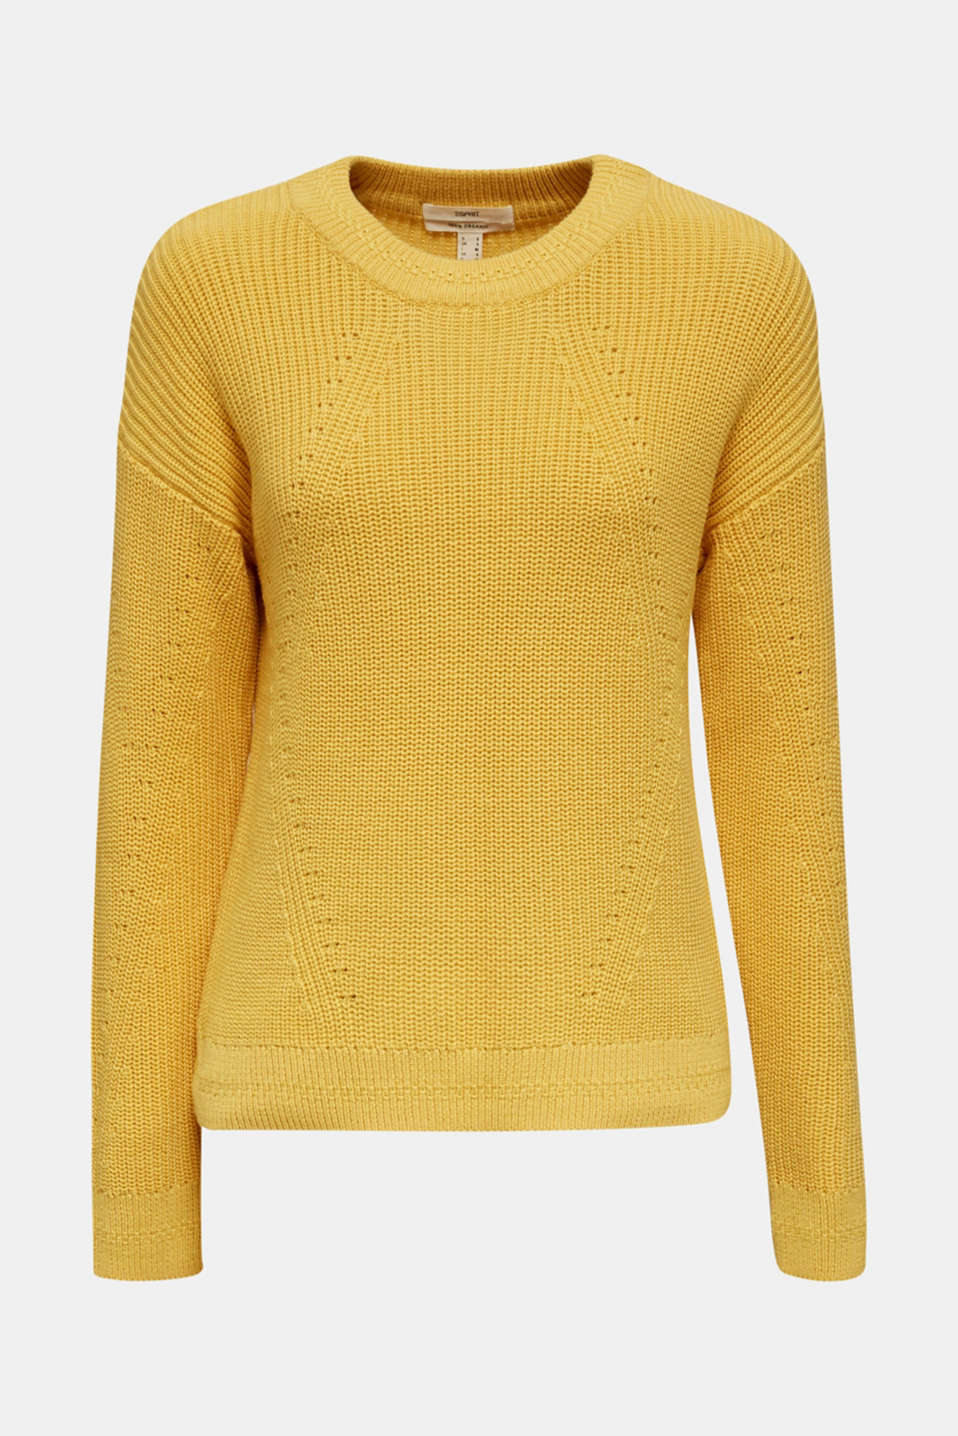 Jumper with textured details, 100% cotton, YELLOW, detail image number 5